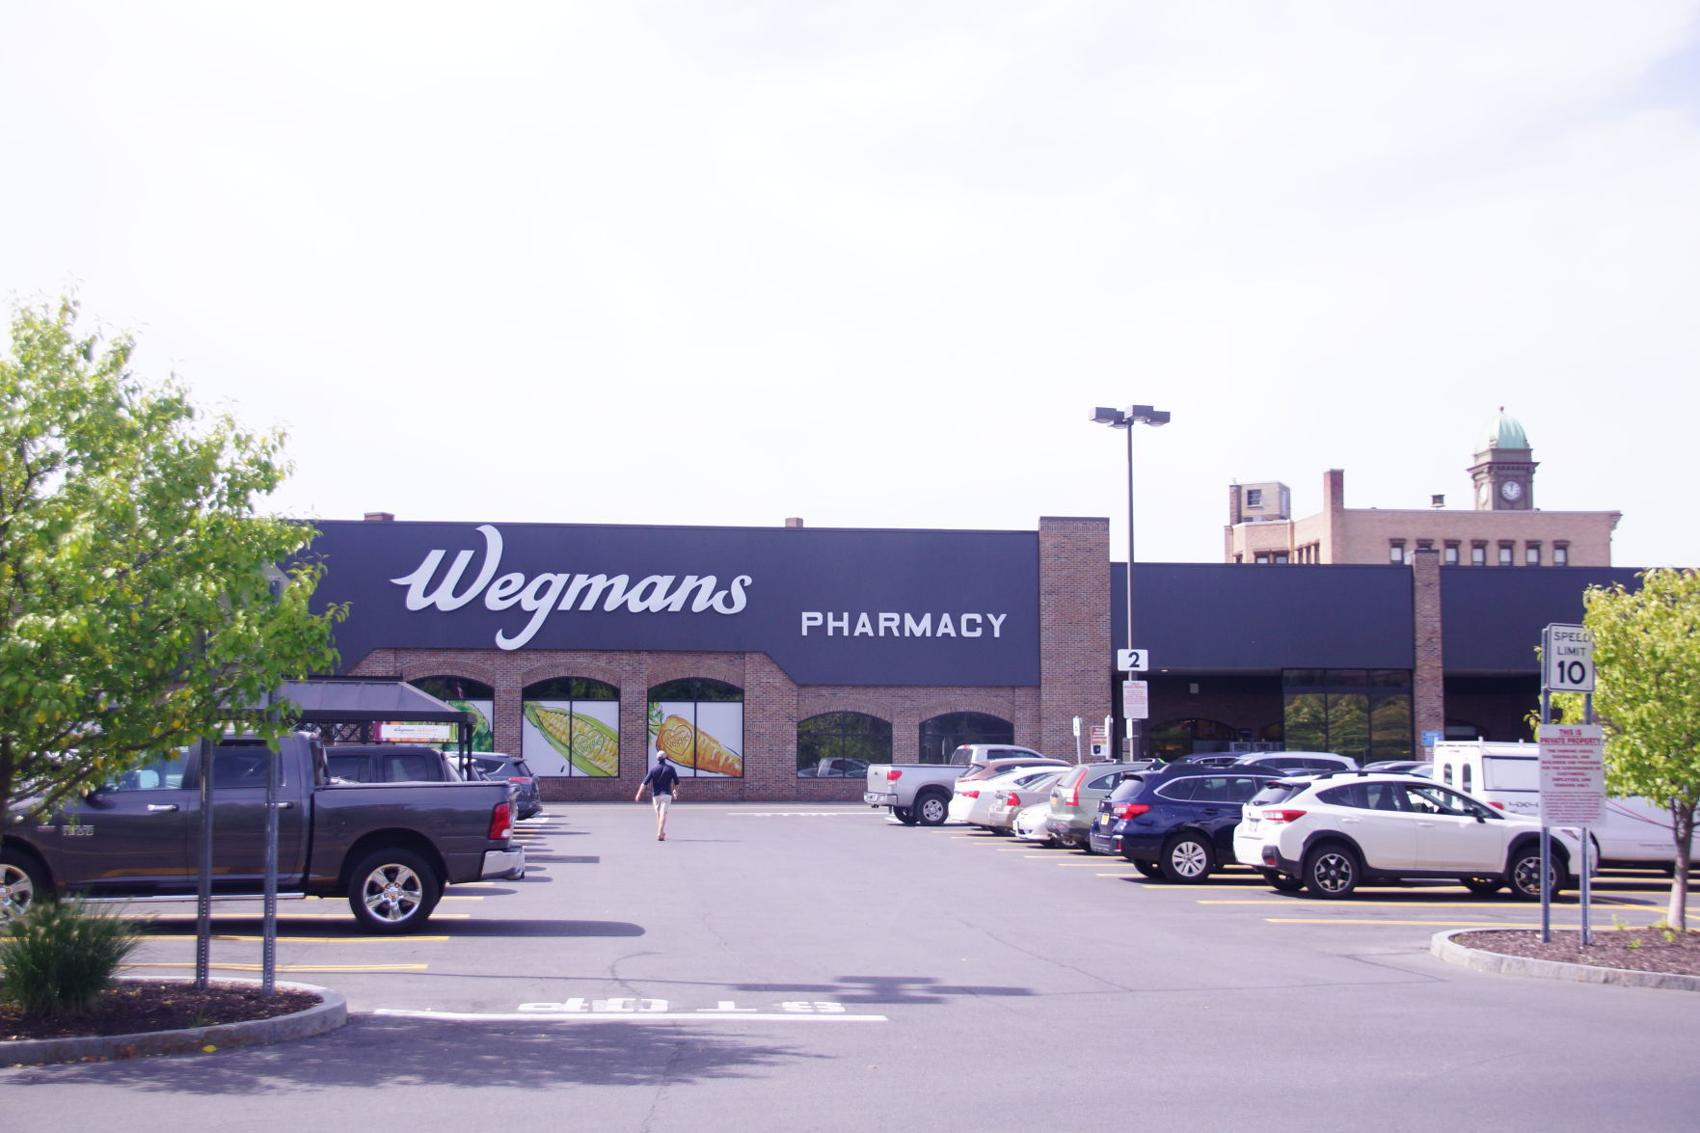 Self-sufficient shopping: Wegmans launches app to guide blind, visually impaired